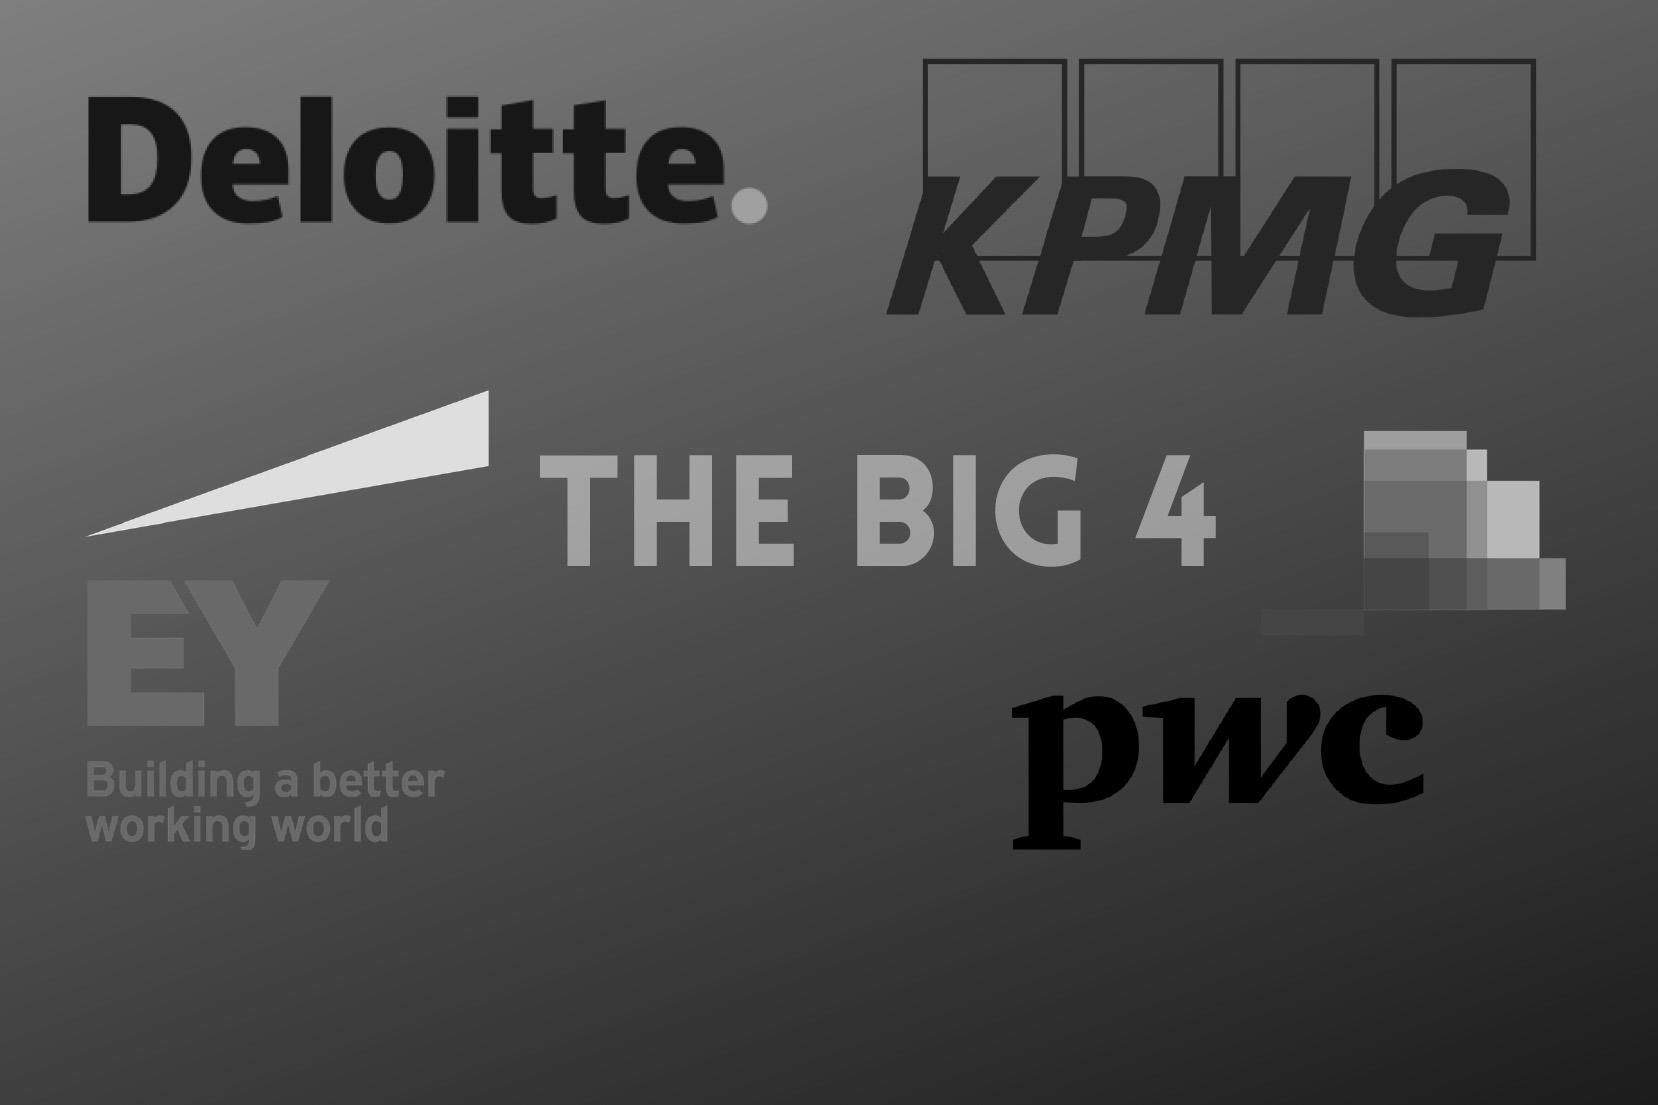 Should trainee accountants always choose the Big 4?